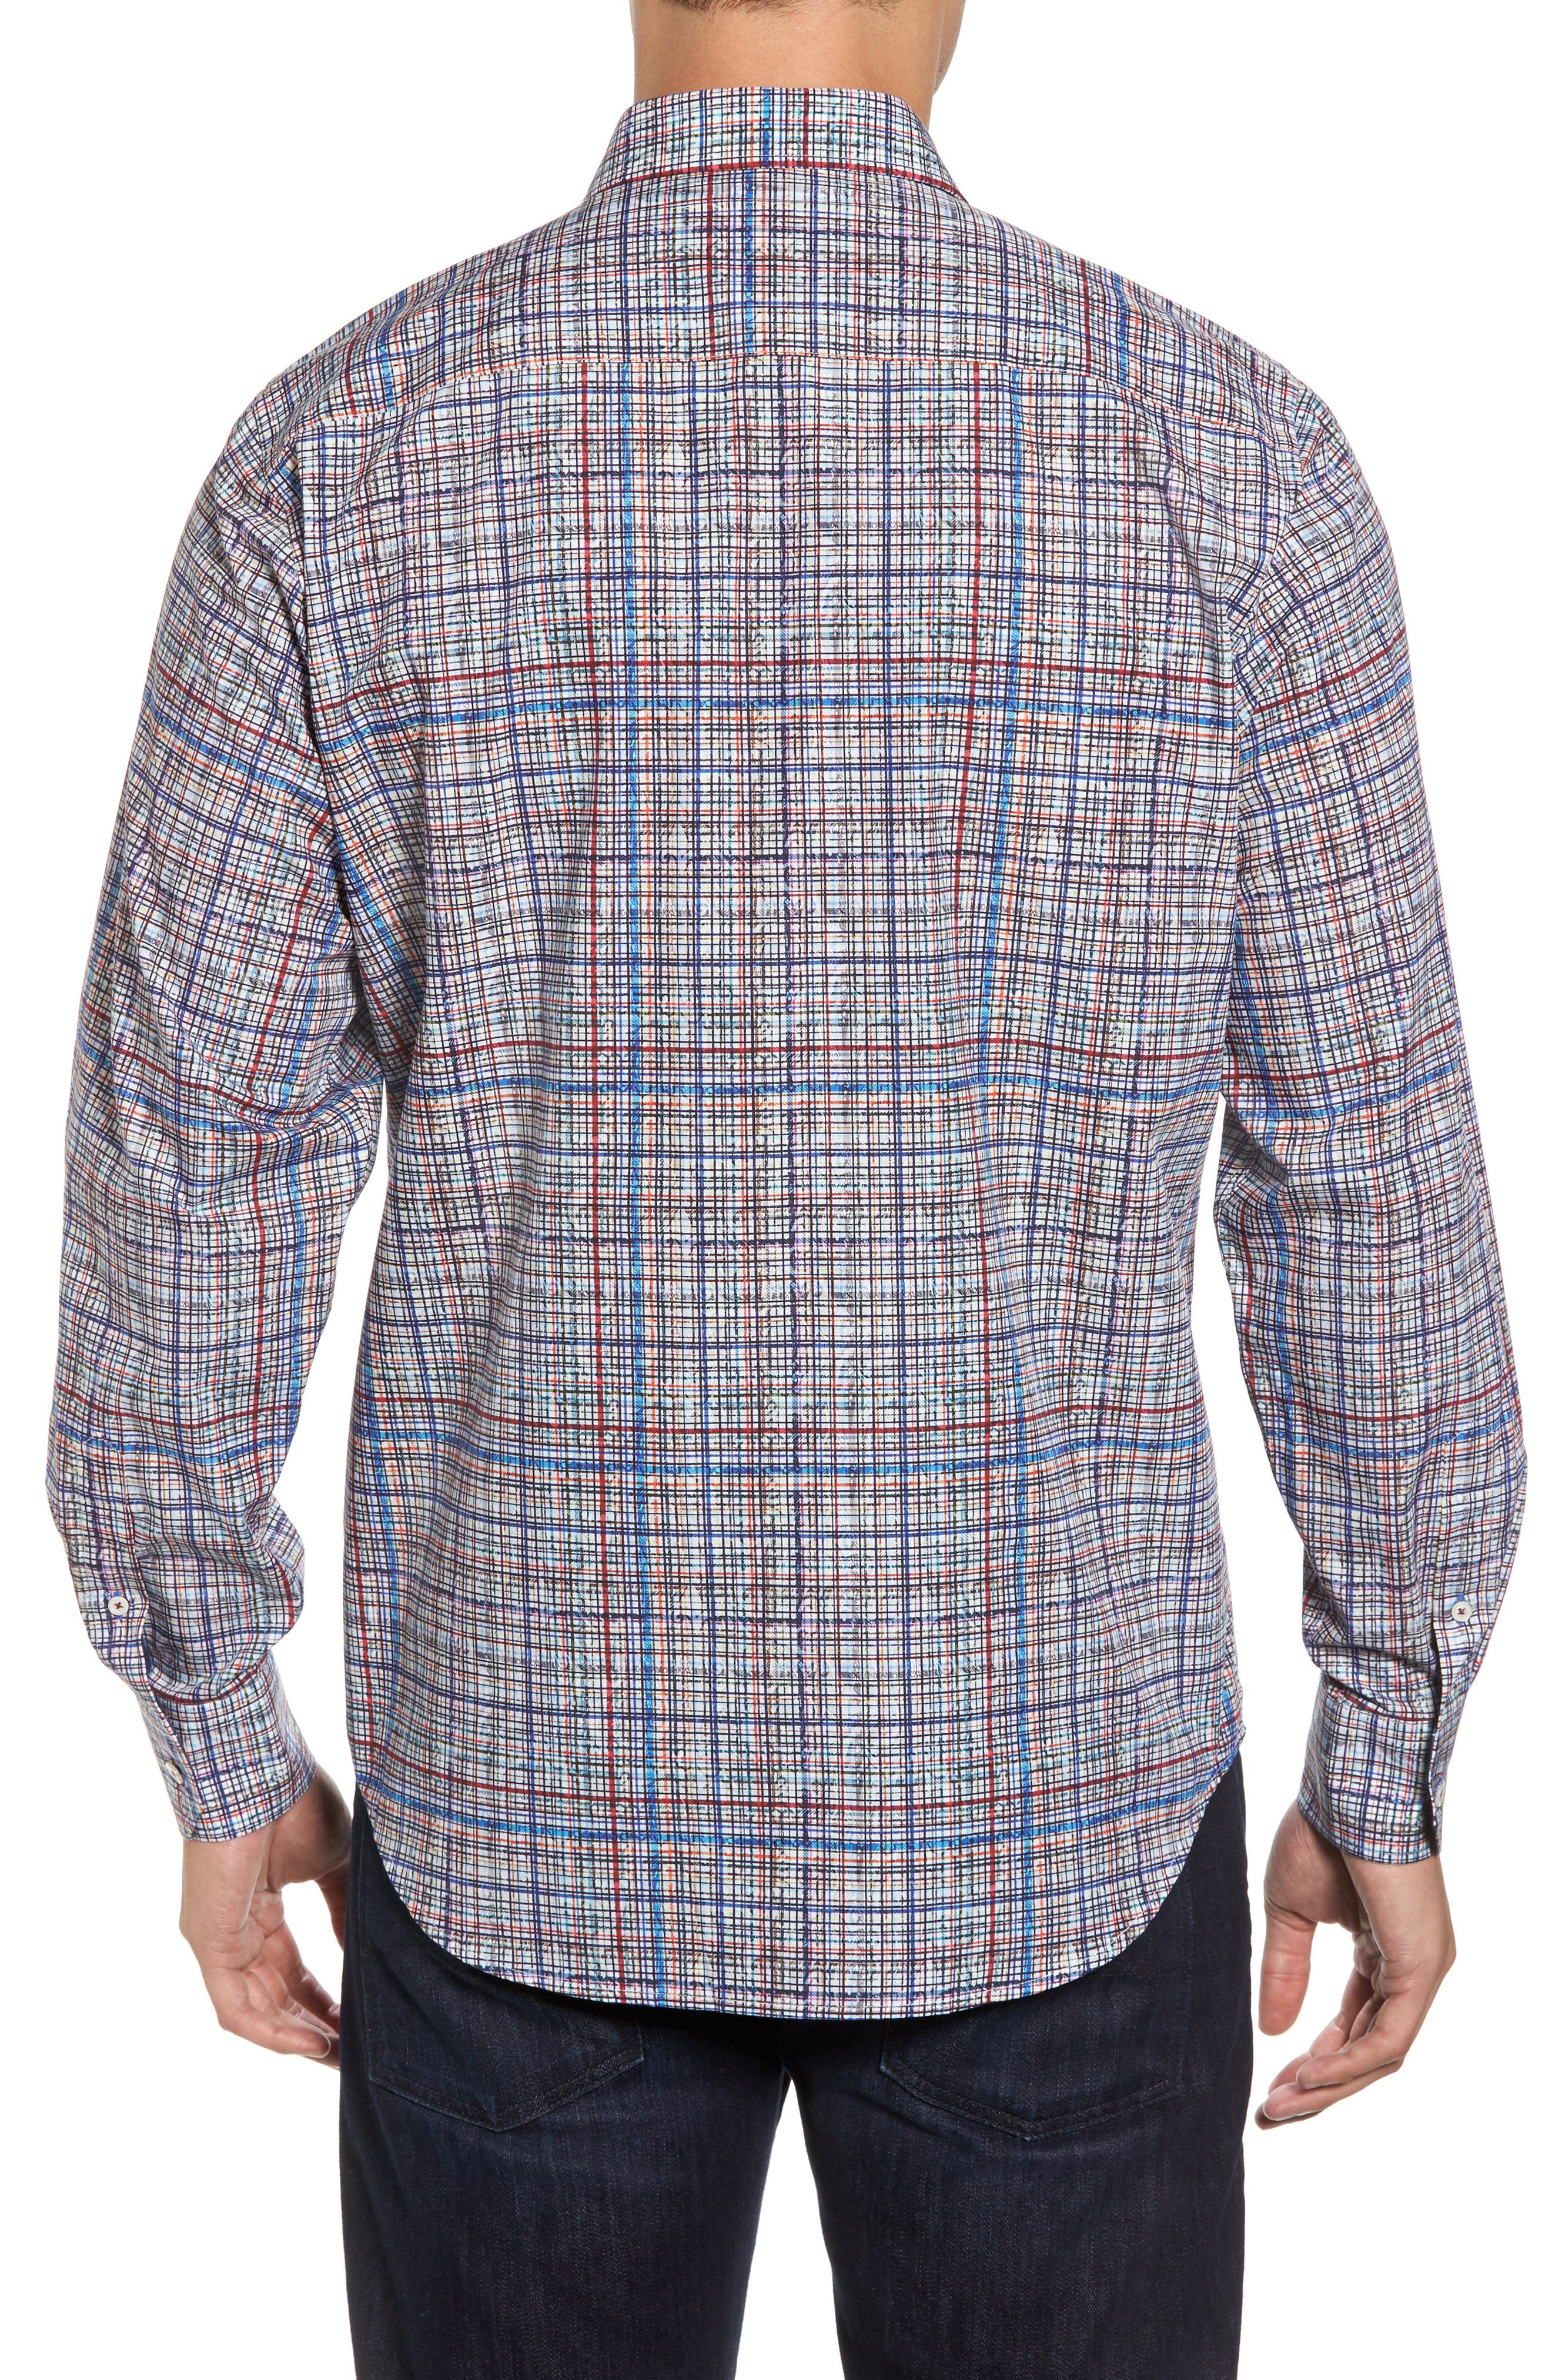 Classic Fit Abstract Plaid Sport Shirt,                             Alternate thumbnail 2, color,                             601